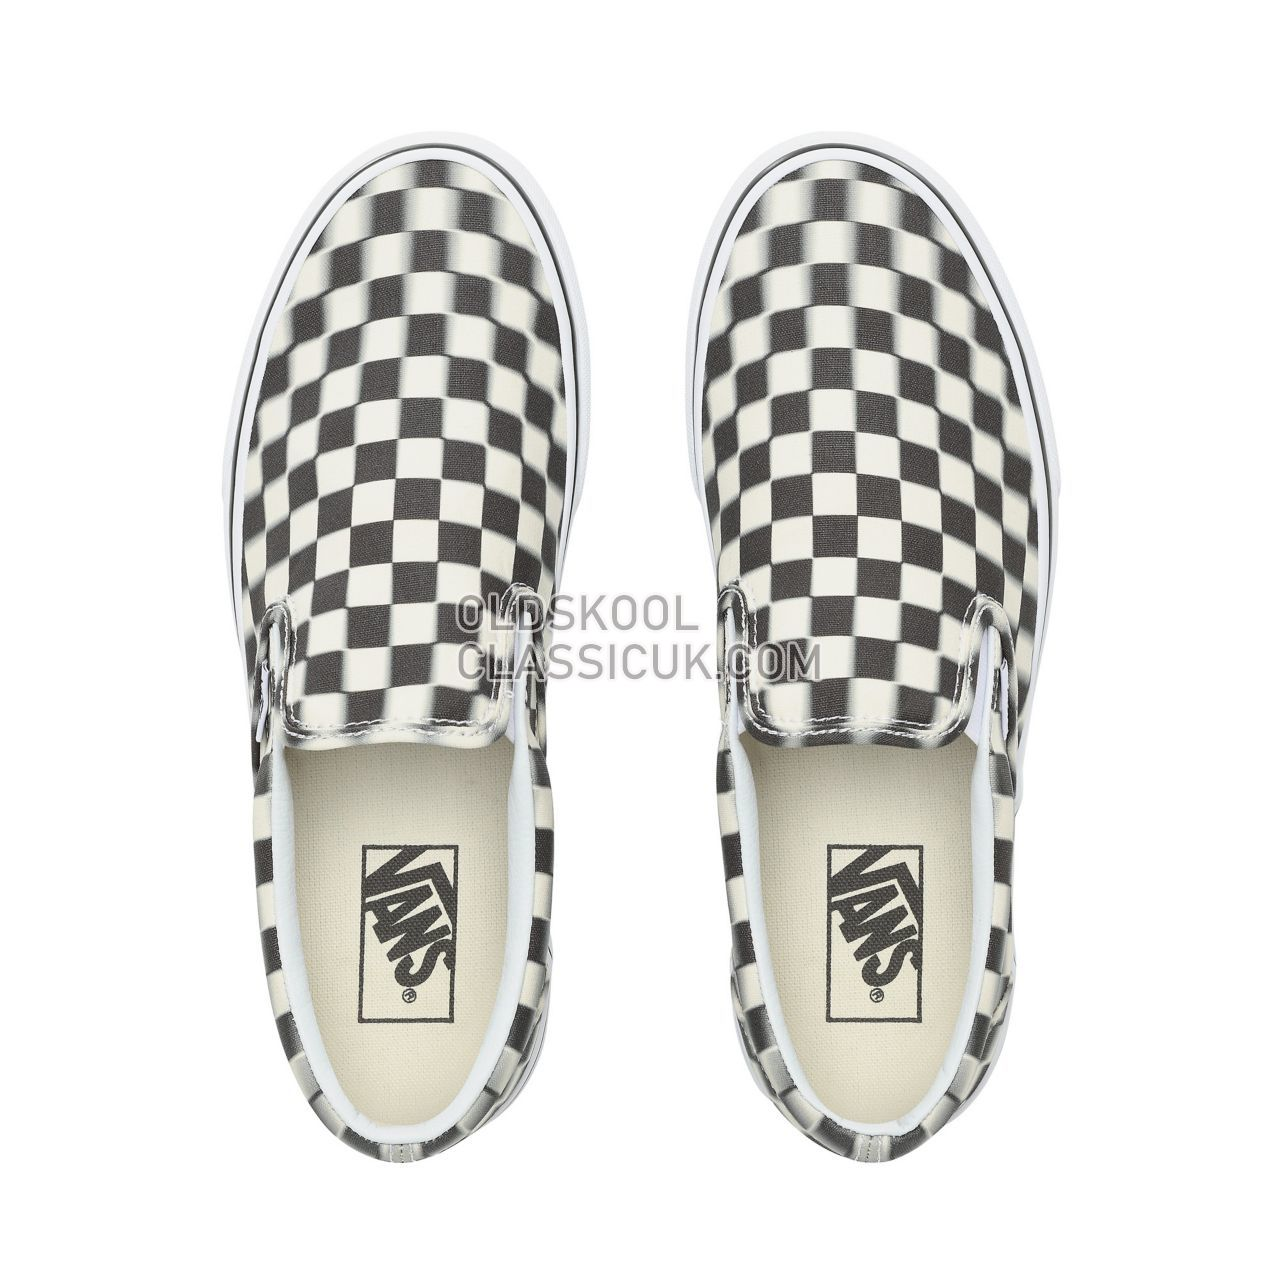 Vans Blur Check Slip-On Sneakers Mens (Blur Check) Black/Classic White VN0A38F7VJM Shoes